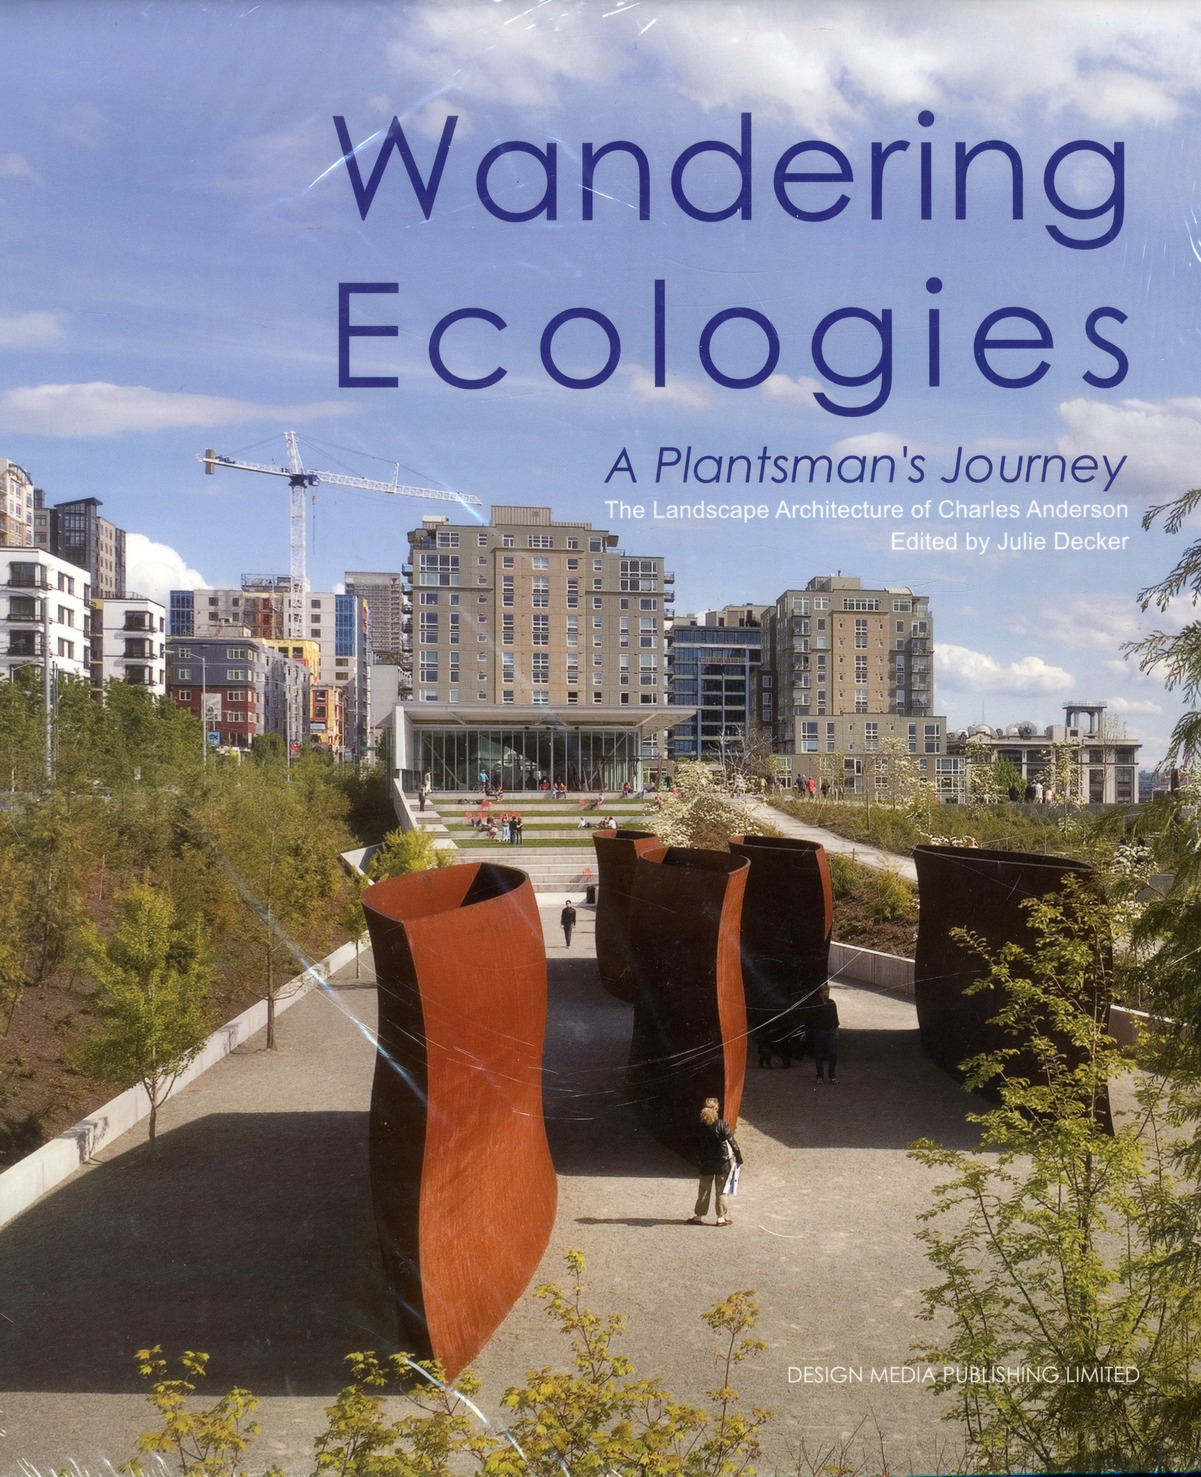 WANDERING ECOLOGIES. A PLANTSMAN'S JOURNEY. THE LANDSCAPE ARCHITECTURE OF CHARLE